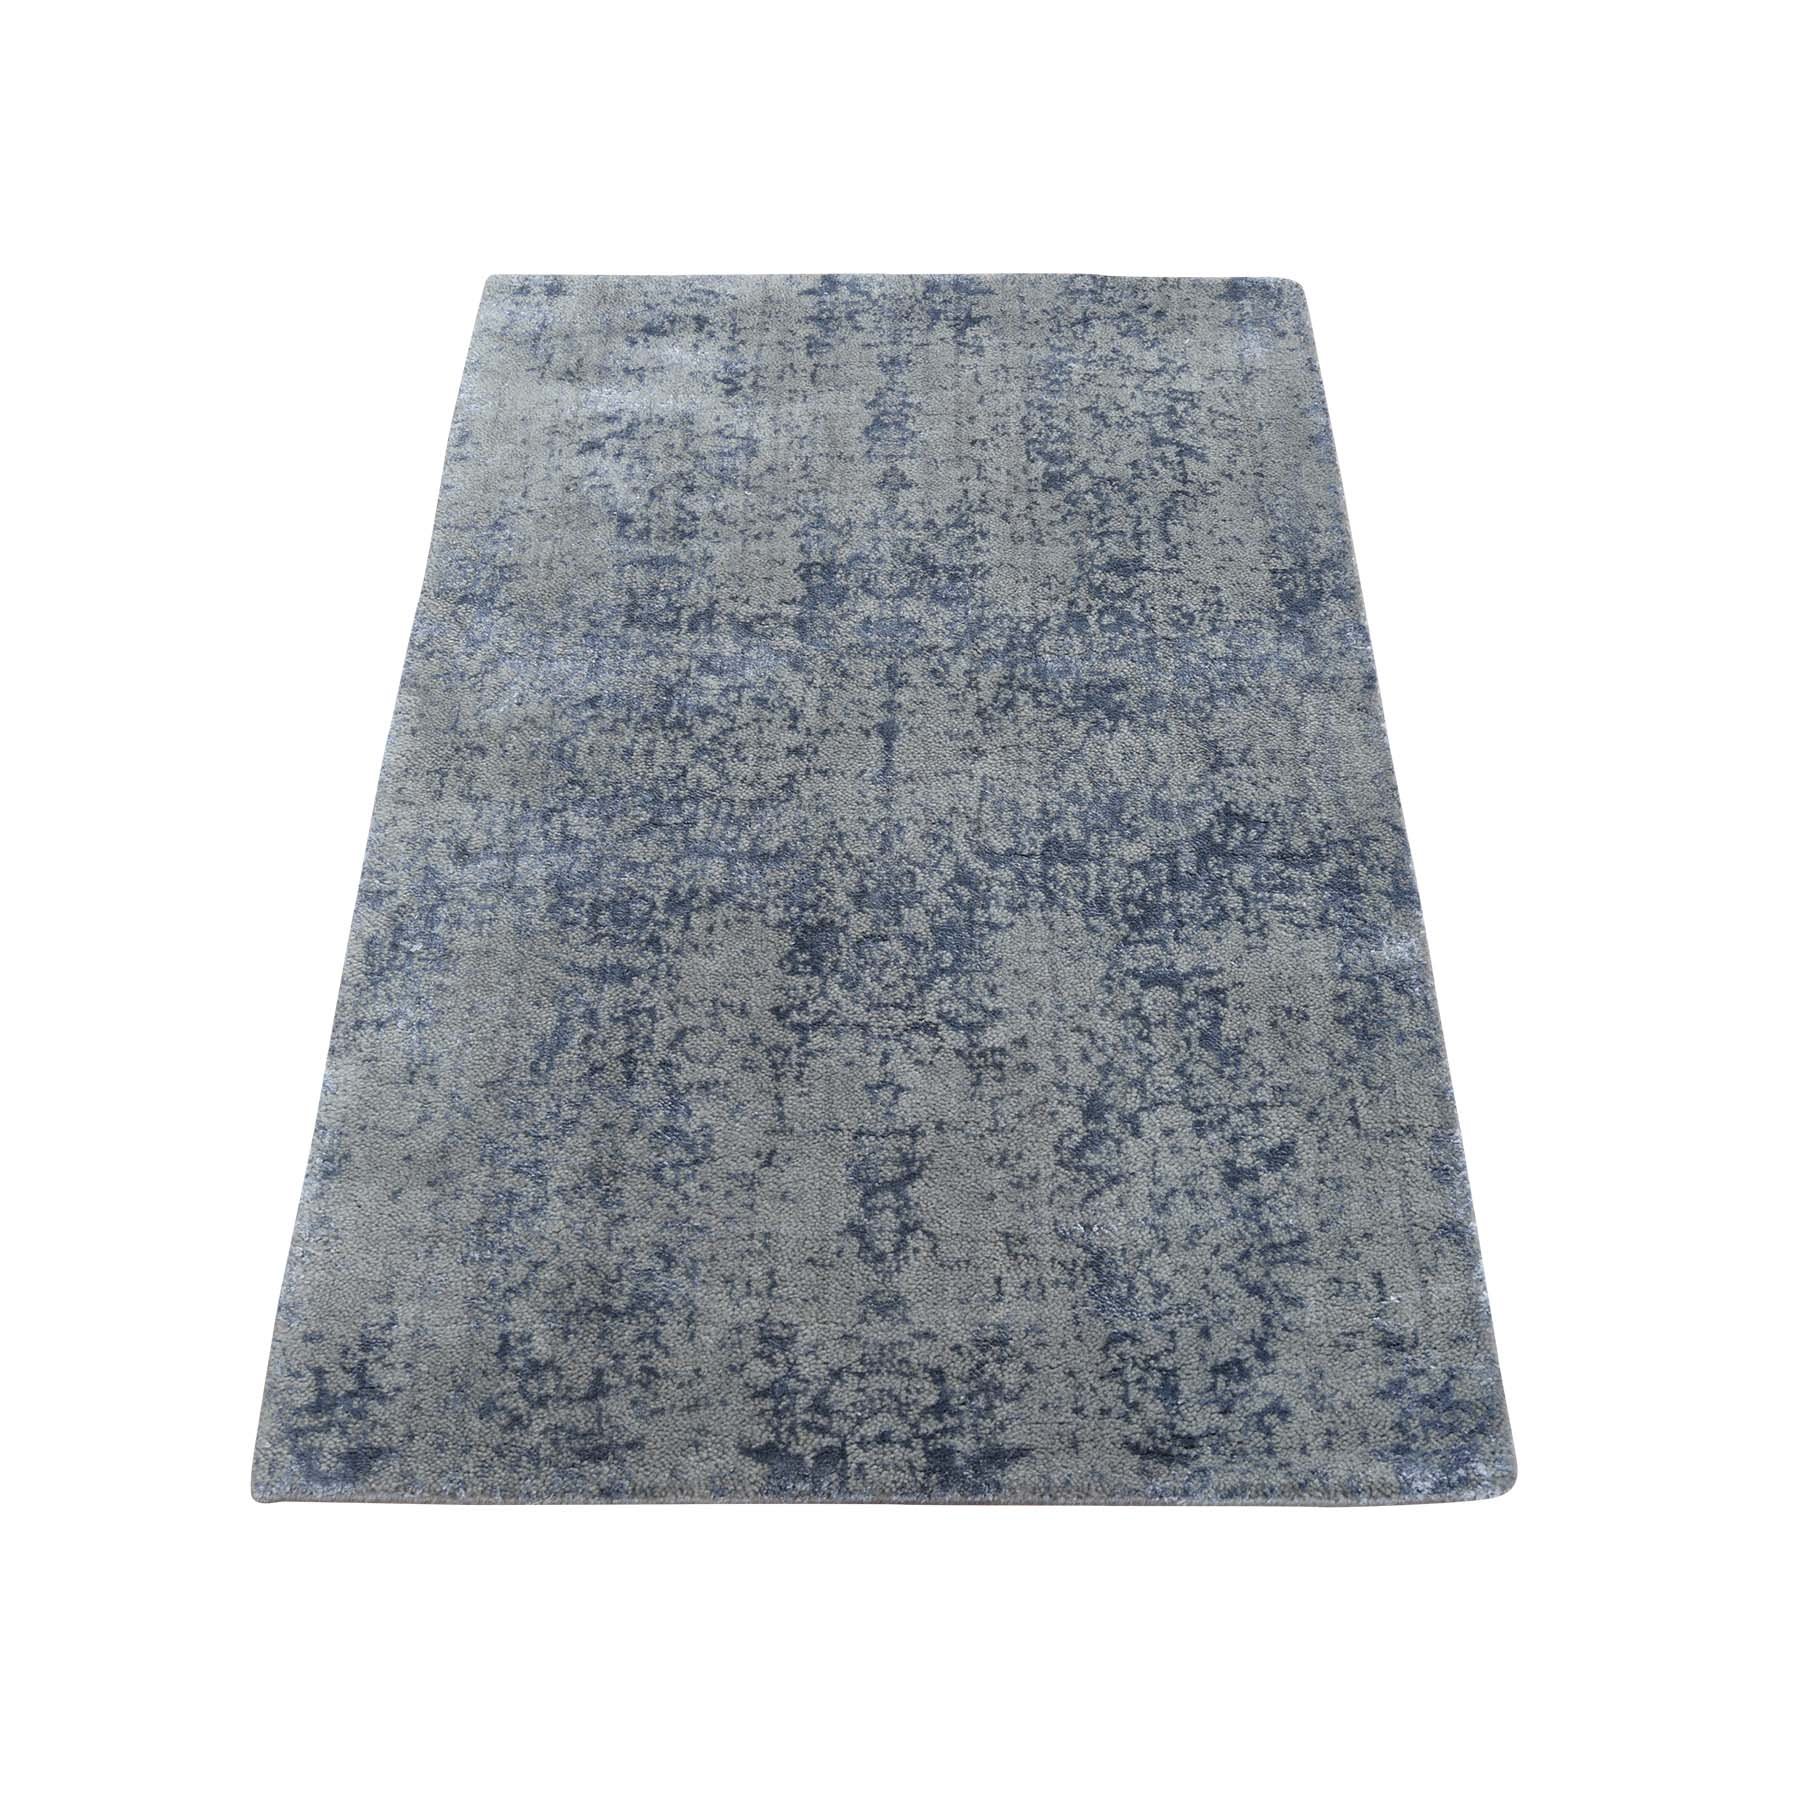 2'X3' Wool And Silk Hand-Loomed Abstract Design Tone On Tone Oriental Rug moac97d0